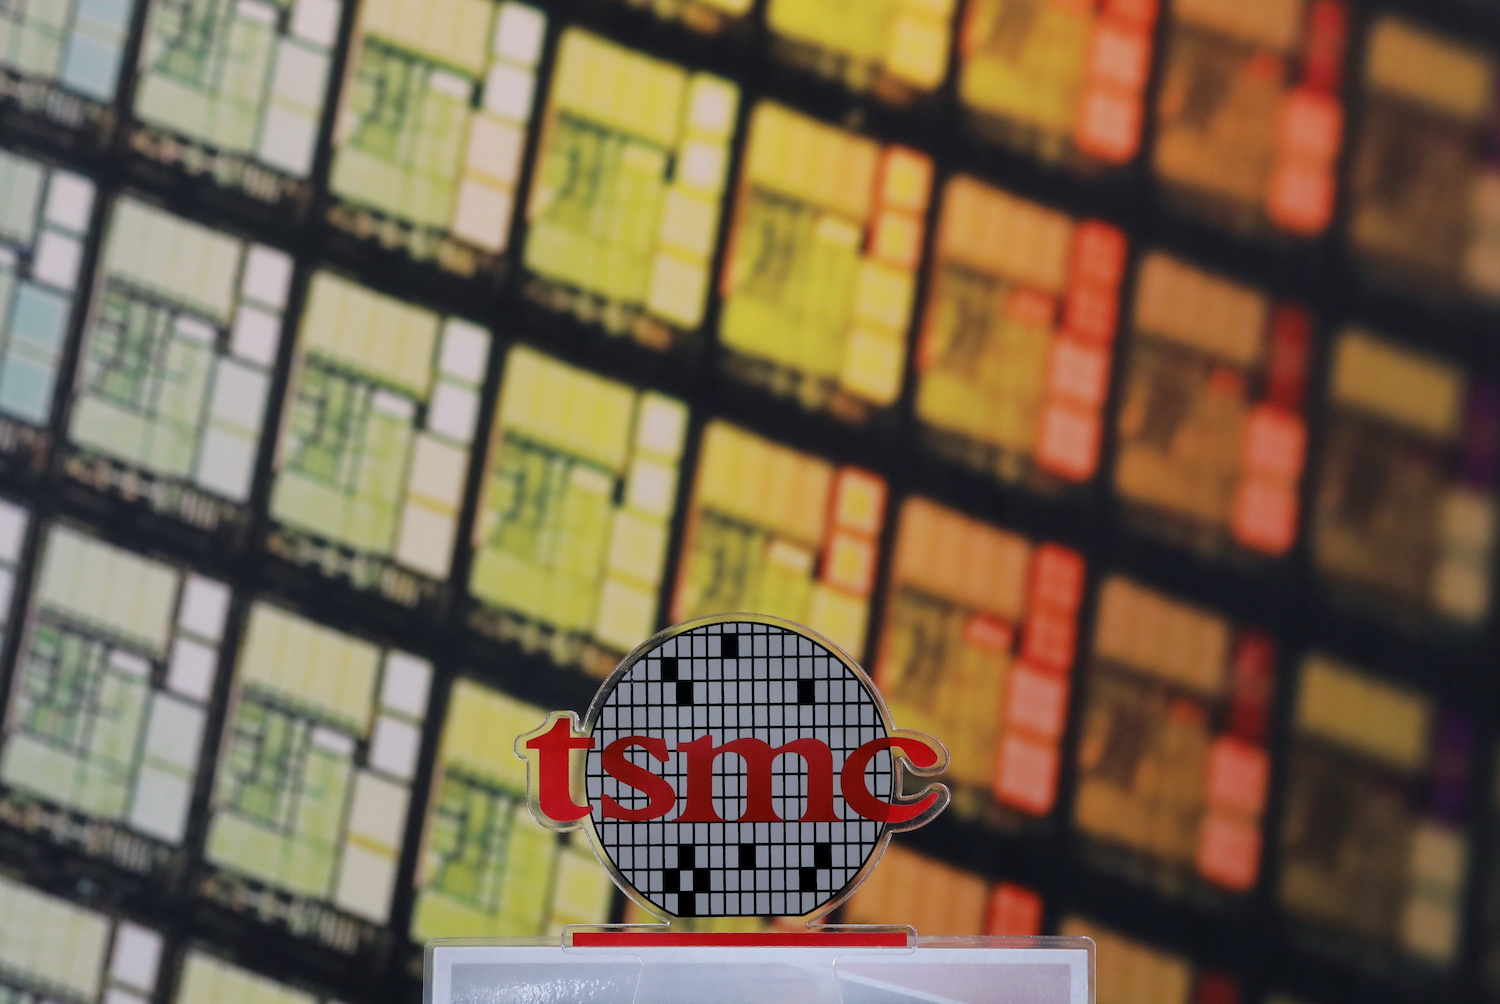 Chip giant TSMC says semiconductor shortage will last into 2022